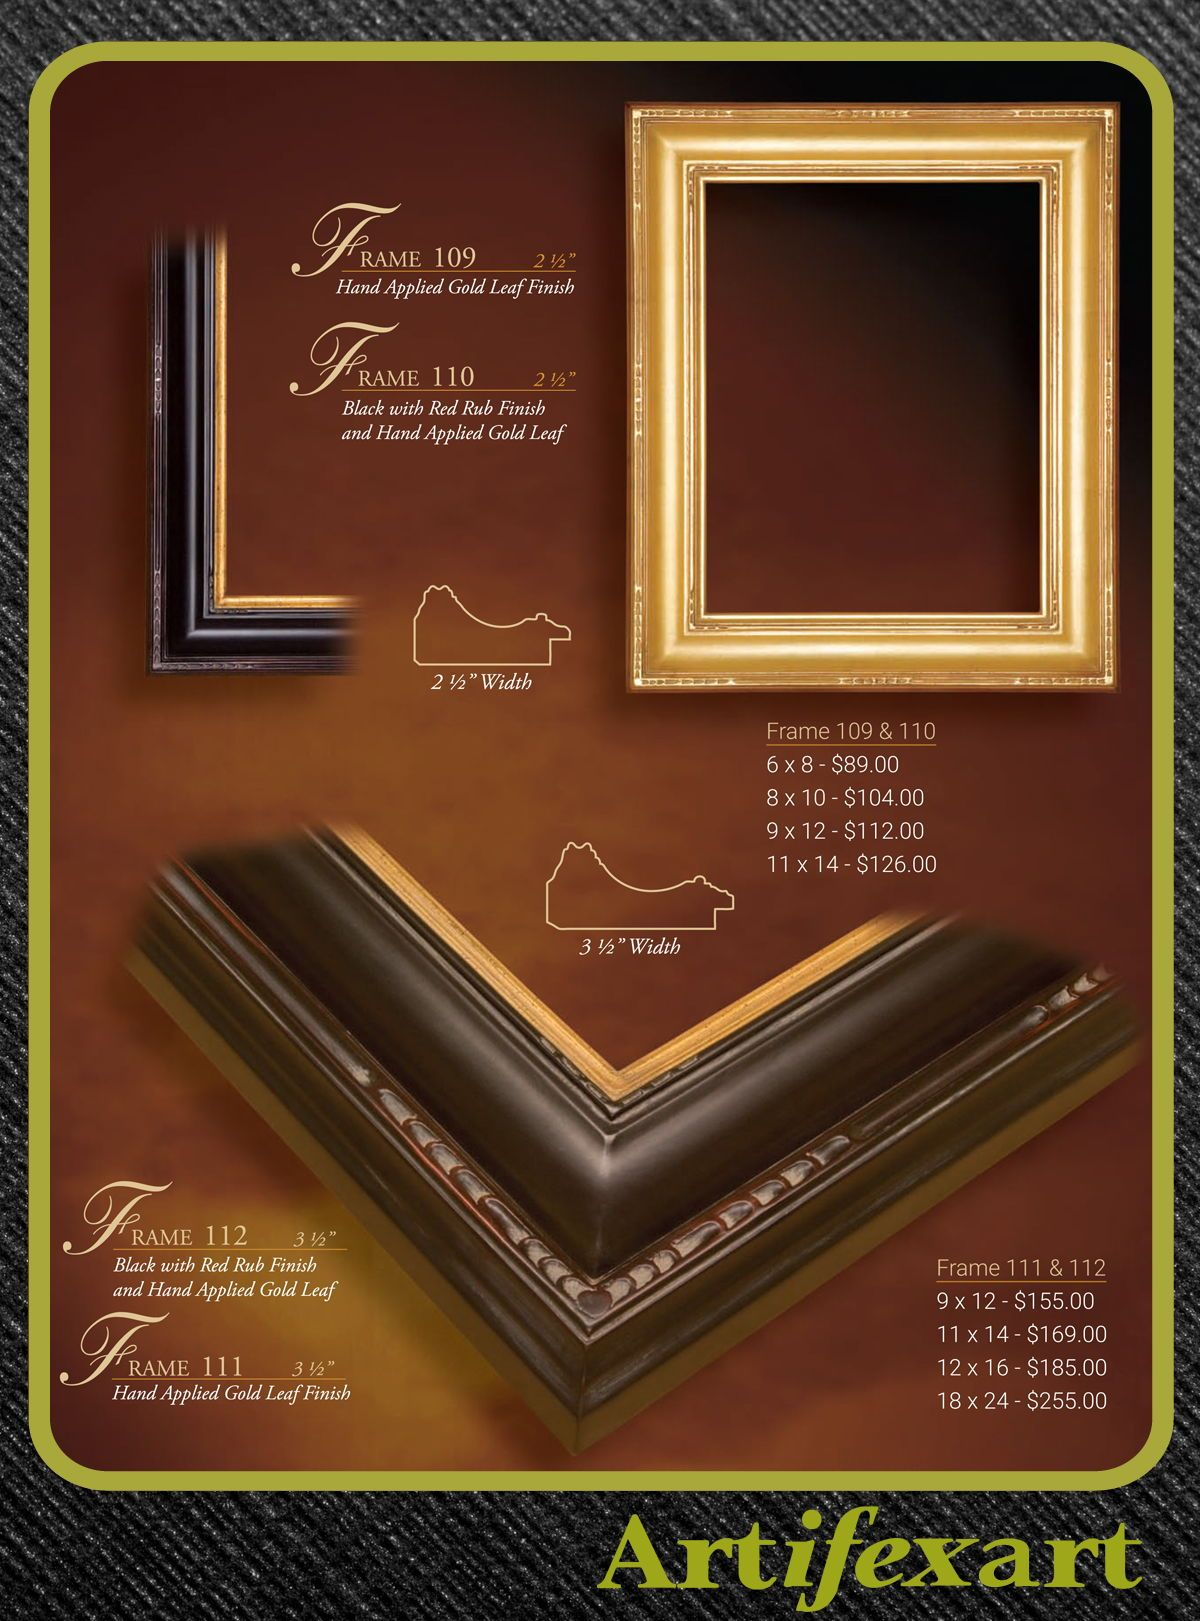 2 1 2 Wide Wood Frame Gold Or Black And Gold Hand Applied Leaf Also Available In 3 1 2 Width Art Deco Plenair Arts A Frame Frame Design Custom Framing